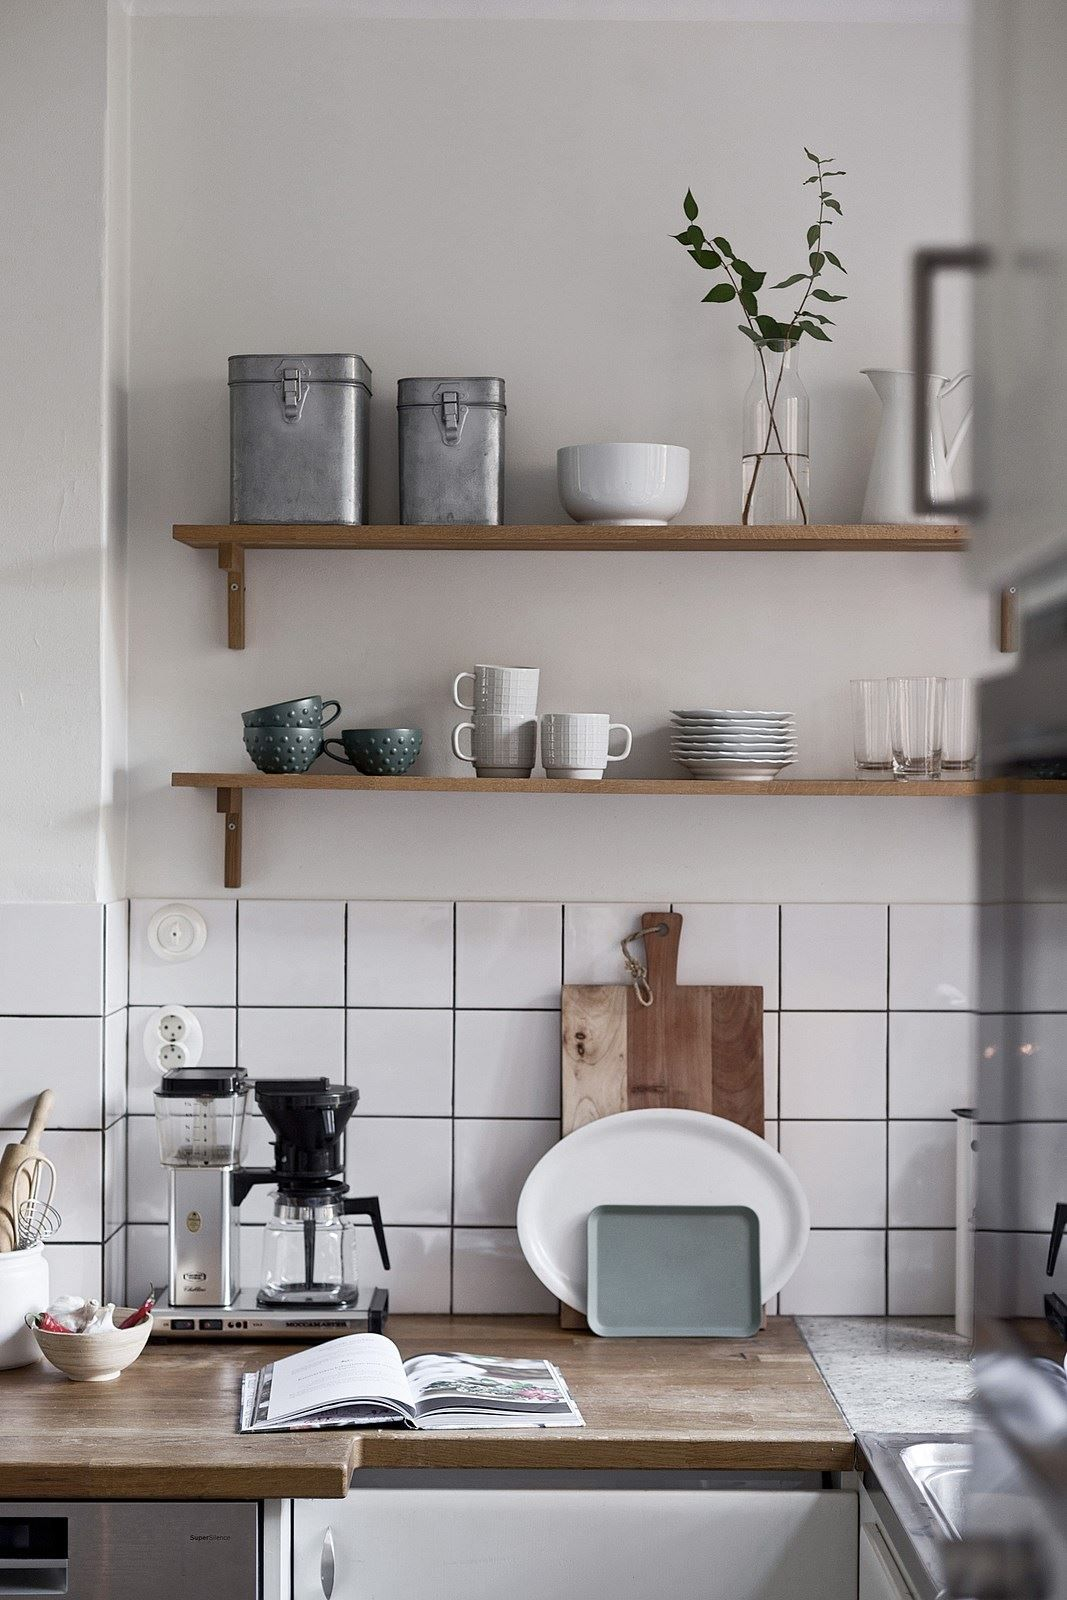 Küche Dekorieren Pinterest Geijersgatan 42 A - Bjurfors | Kitchen Decor Apartment, Home Decor Kitchen, Interior Design Kitchen